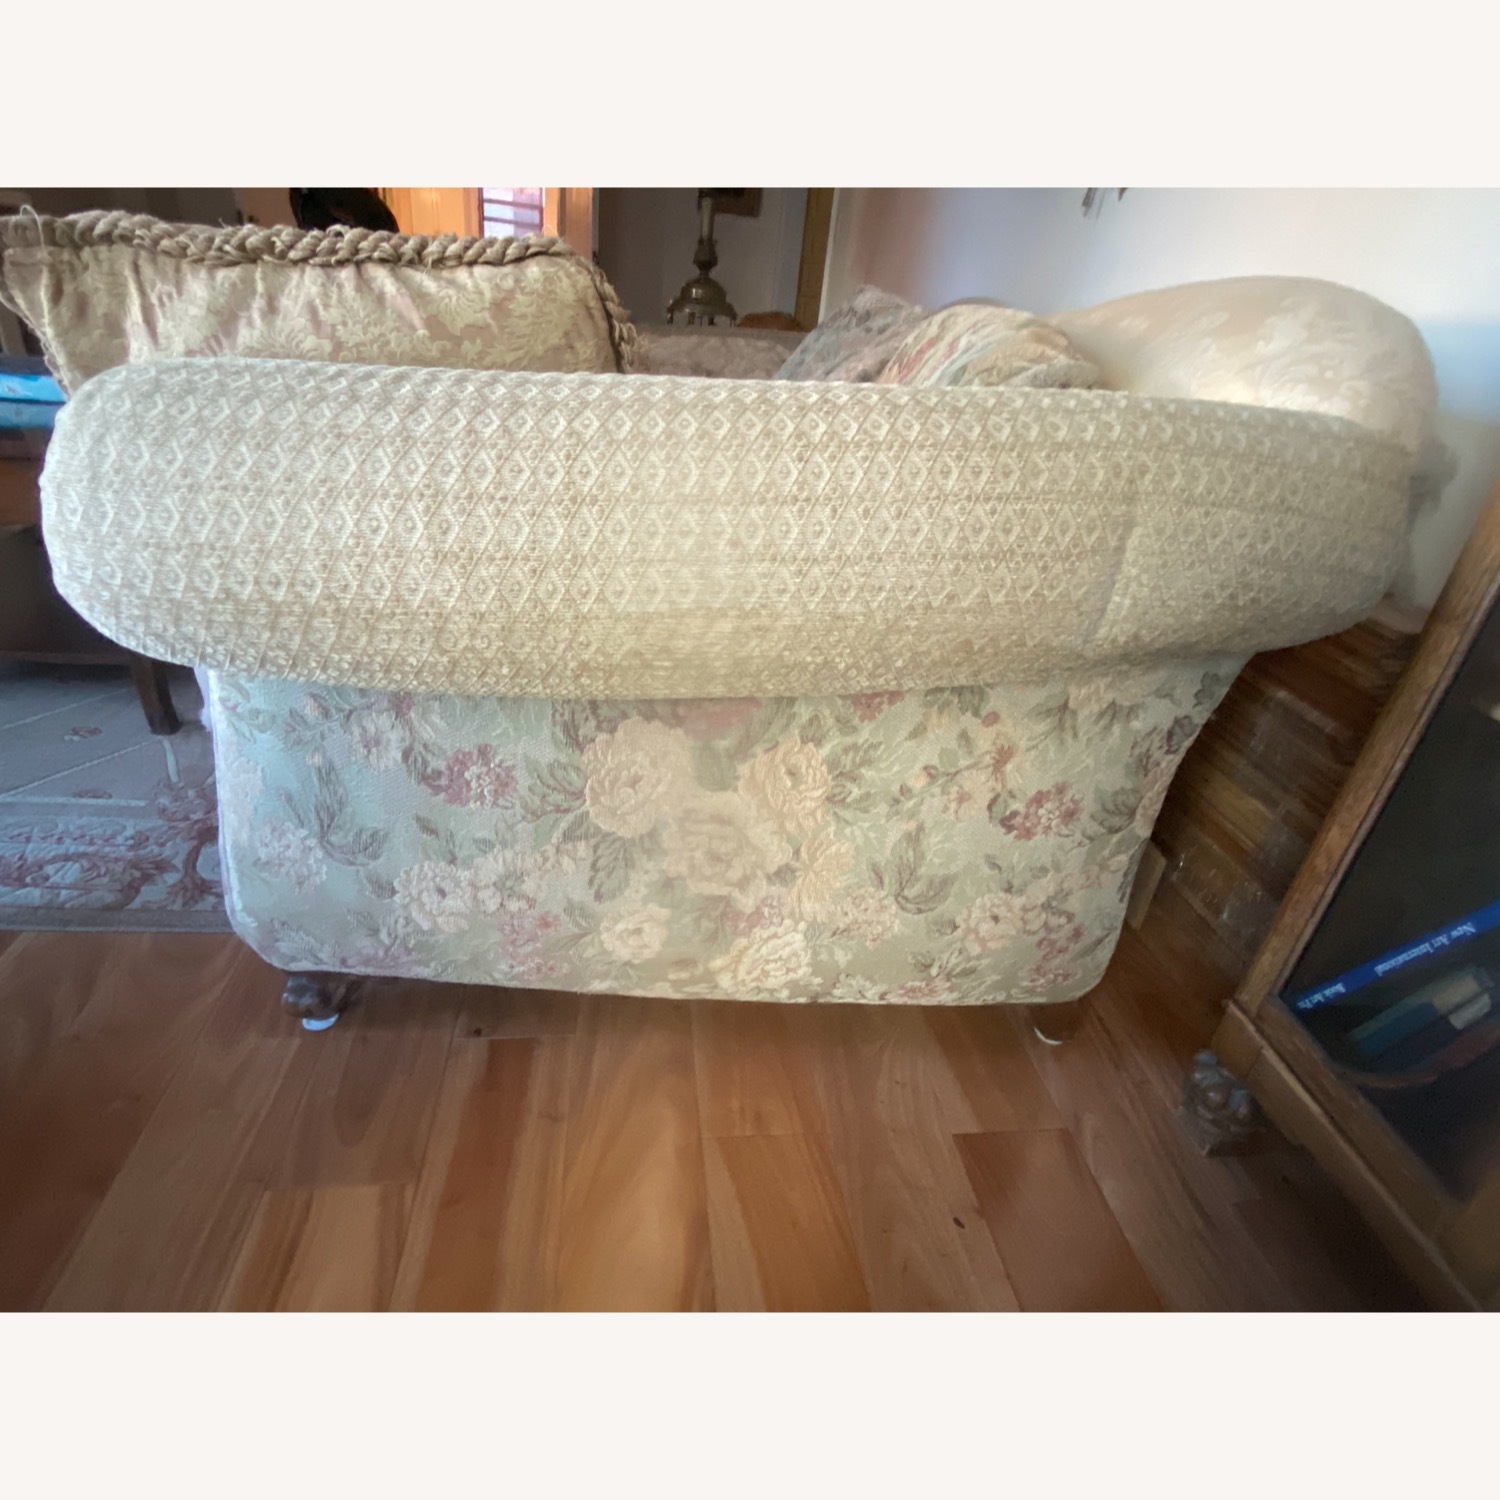 Domain Ornate Super Comfortable Couch Art Deco in Style - image-3